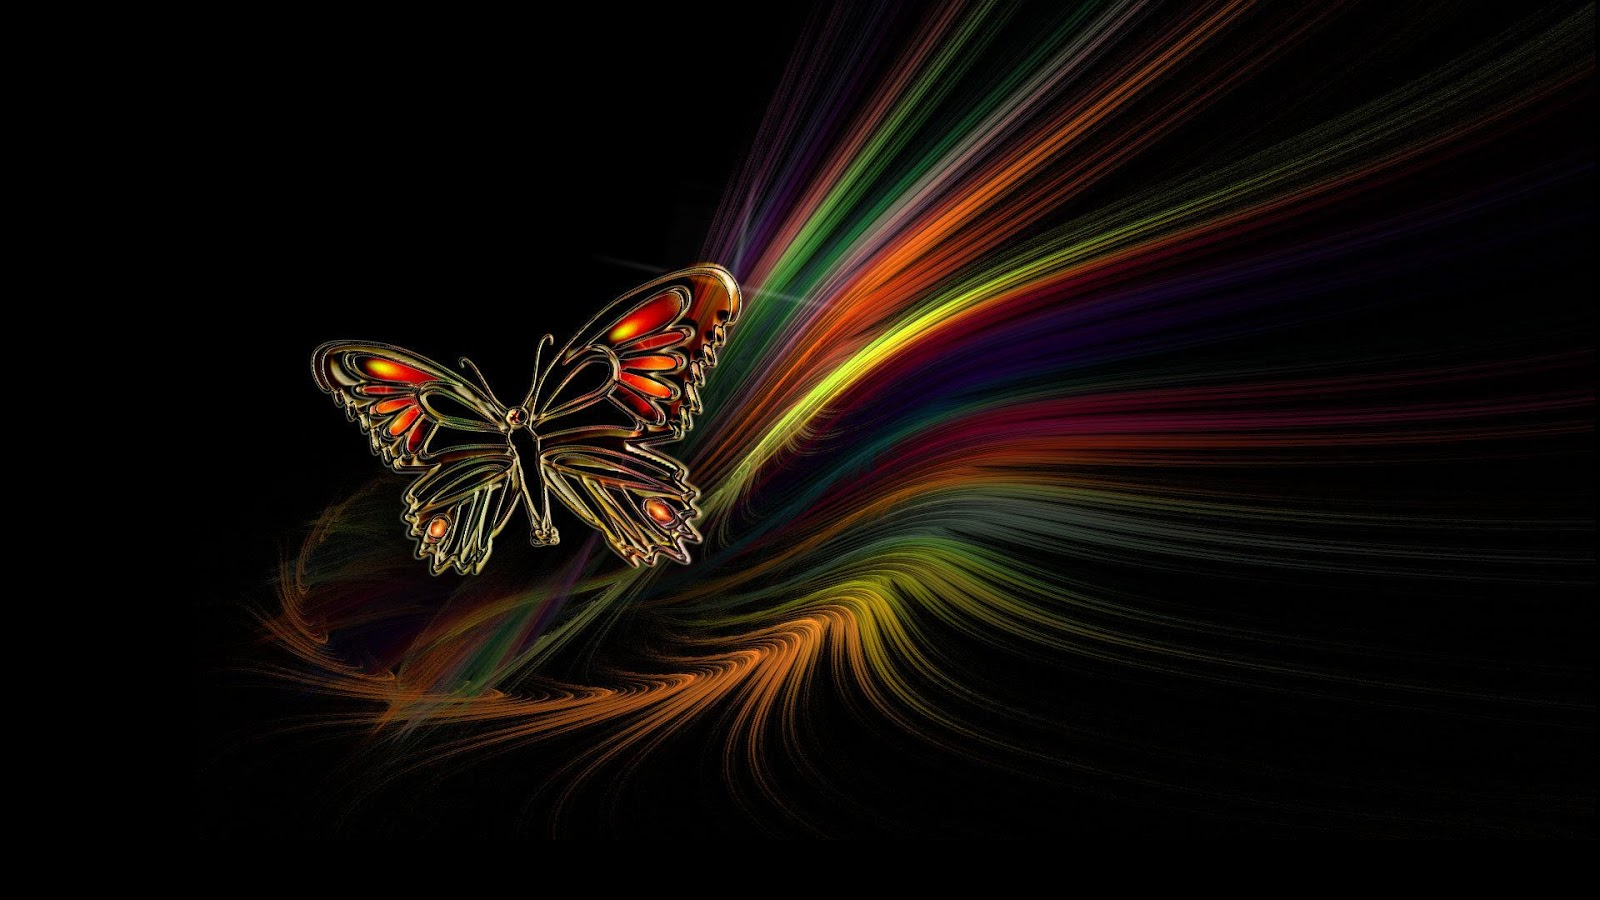 beautiful abstract desktop backgrounds 6 HD Wallpaper 3D Abstract 1600x900